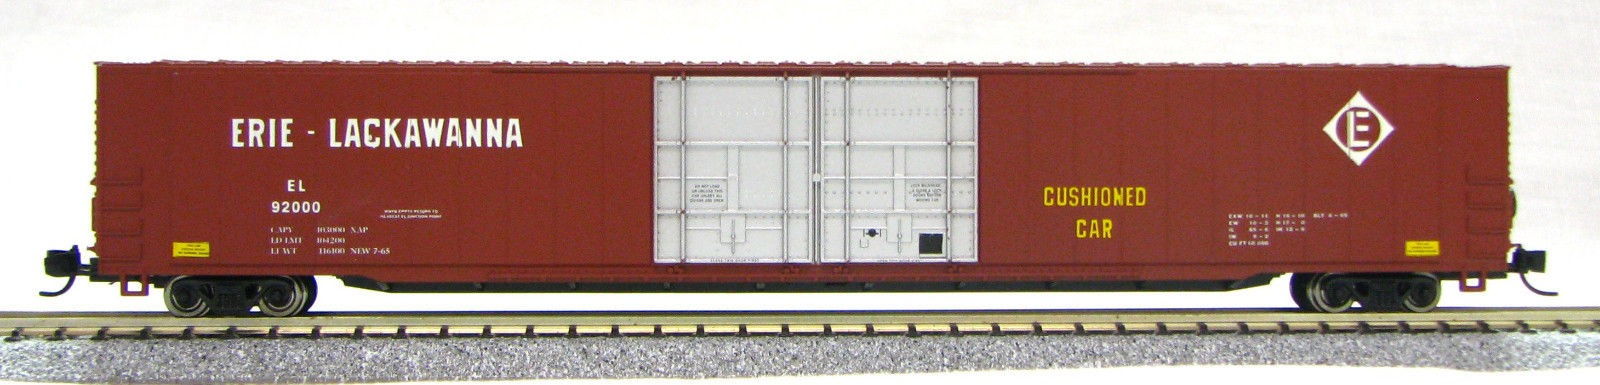 N Scale 4 Door 85 Ft Hi-Cube,Erie Lackawanna (with MT couplers) 1-014670